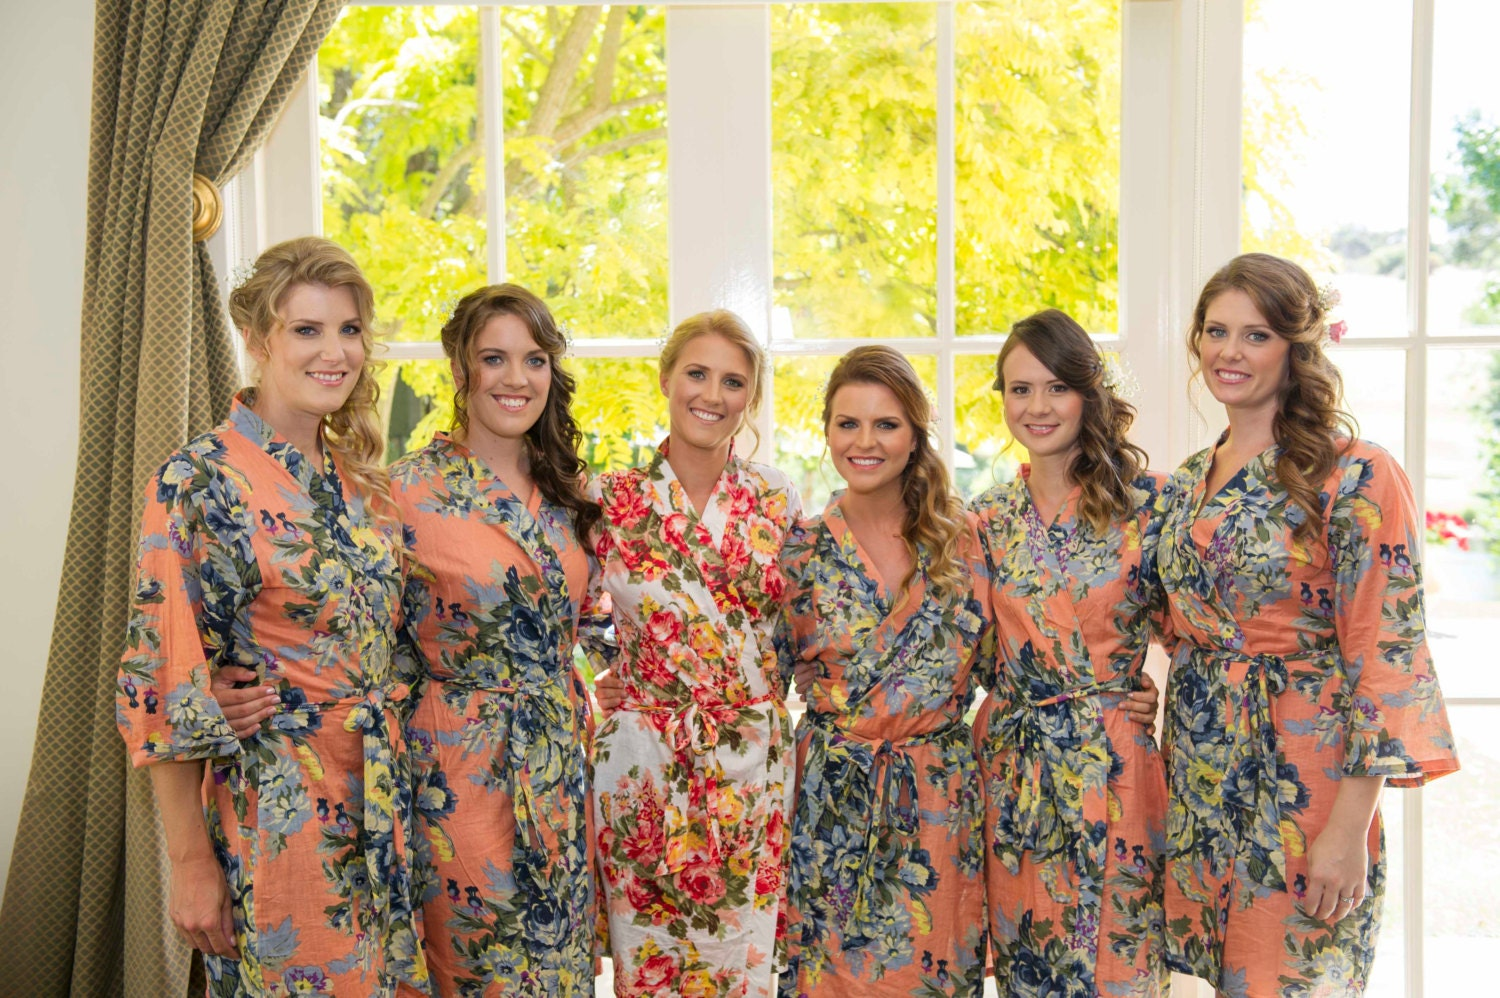 Bridesmaid gift custom kimono crossover floral cotton bridesmaids robes, perfect gift, will you be my bridesmaid, wedding favor